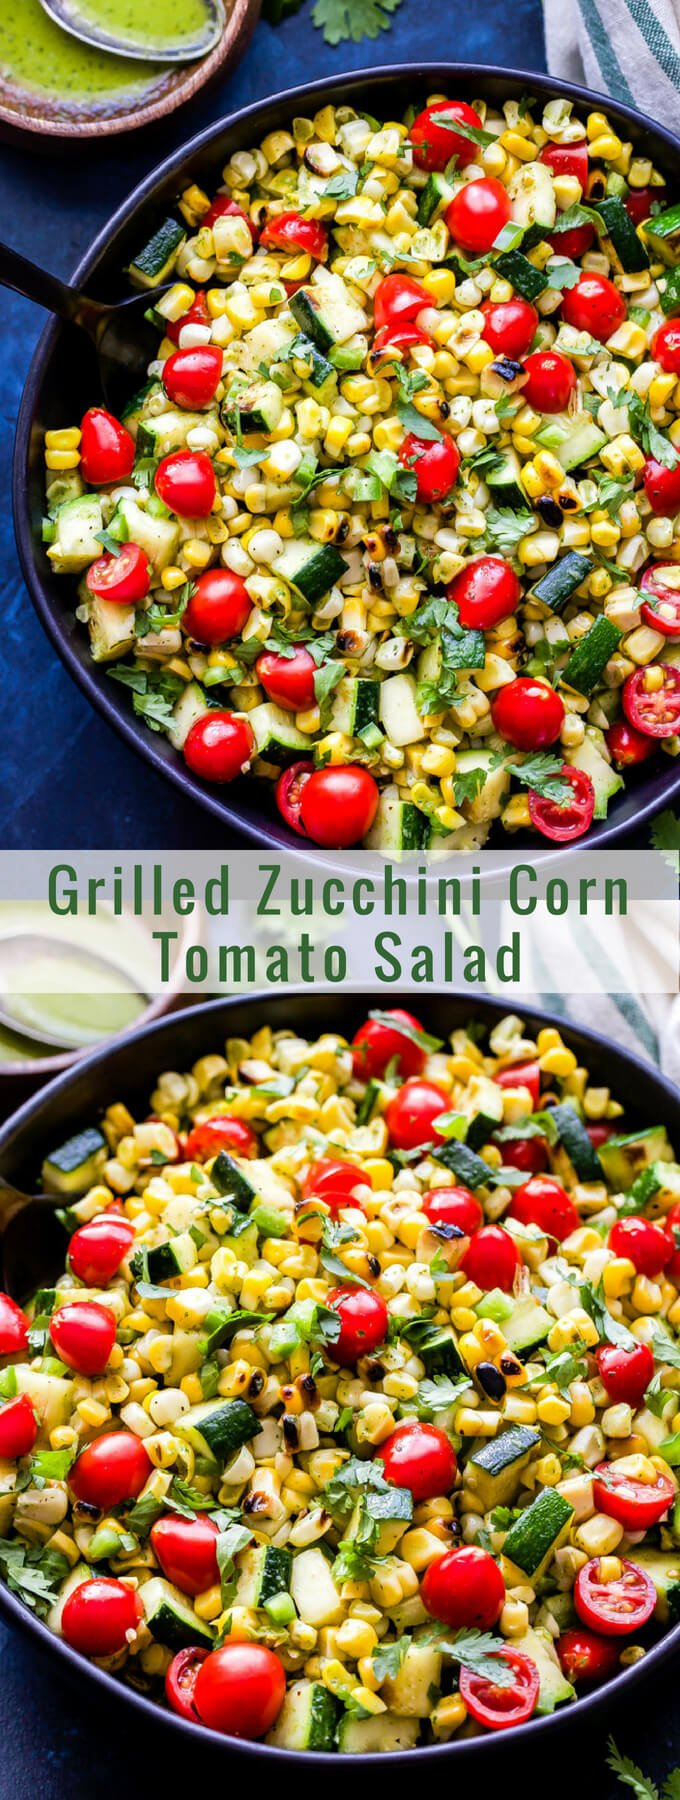 Grilled Zucchini Corn Tomato Salad is a simple salad using all of summer's finest produce. Grilling the vegetables adds a wonderful smoky flavor and the cilantro lime vinaigrette brings the whole salad together! #salad #corn #zucchini #tomatoes #grilling #glutenfree #vegan